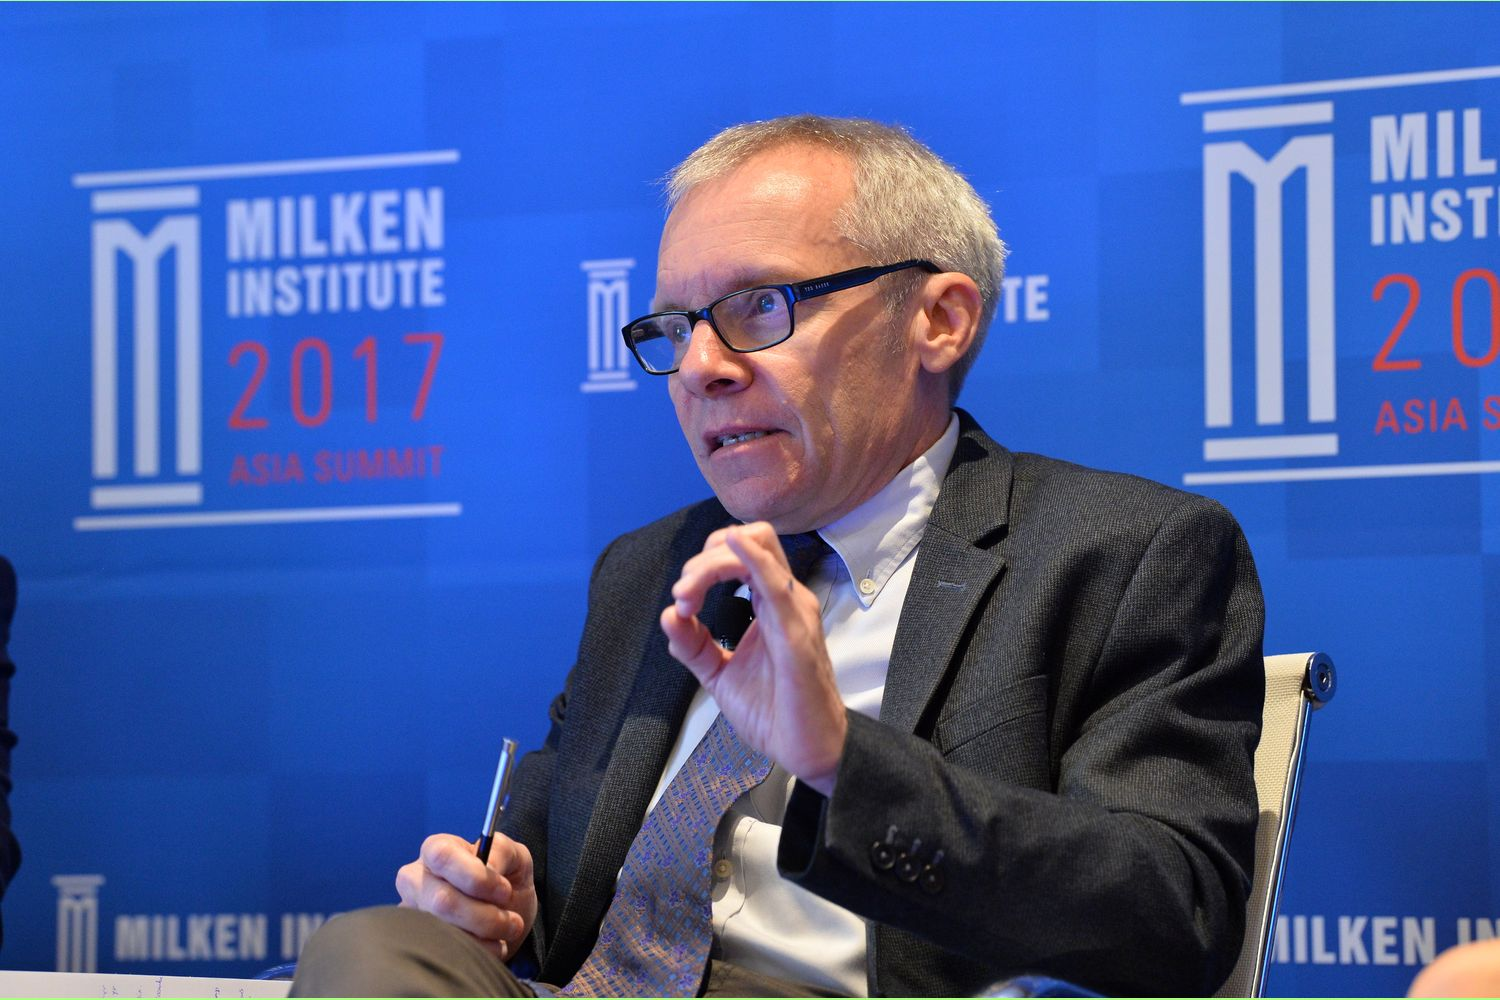 Sean Turnell, the economic adviser to Myanmar's elected leader Aung San Suu Kyi, is seen at the Milken Institute 2017 Asia Summit in Singapore, in this September 30, 2017 handout photograph. (Milken Insititute/Handout via Reuters)